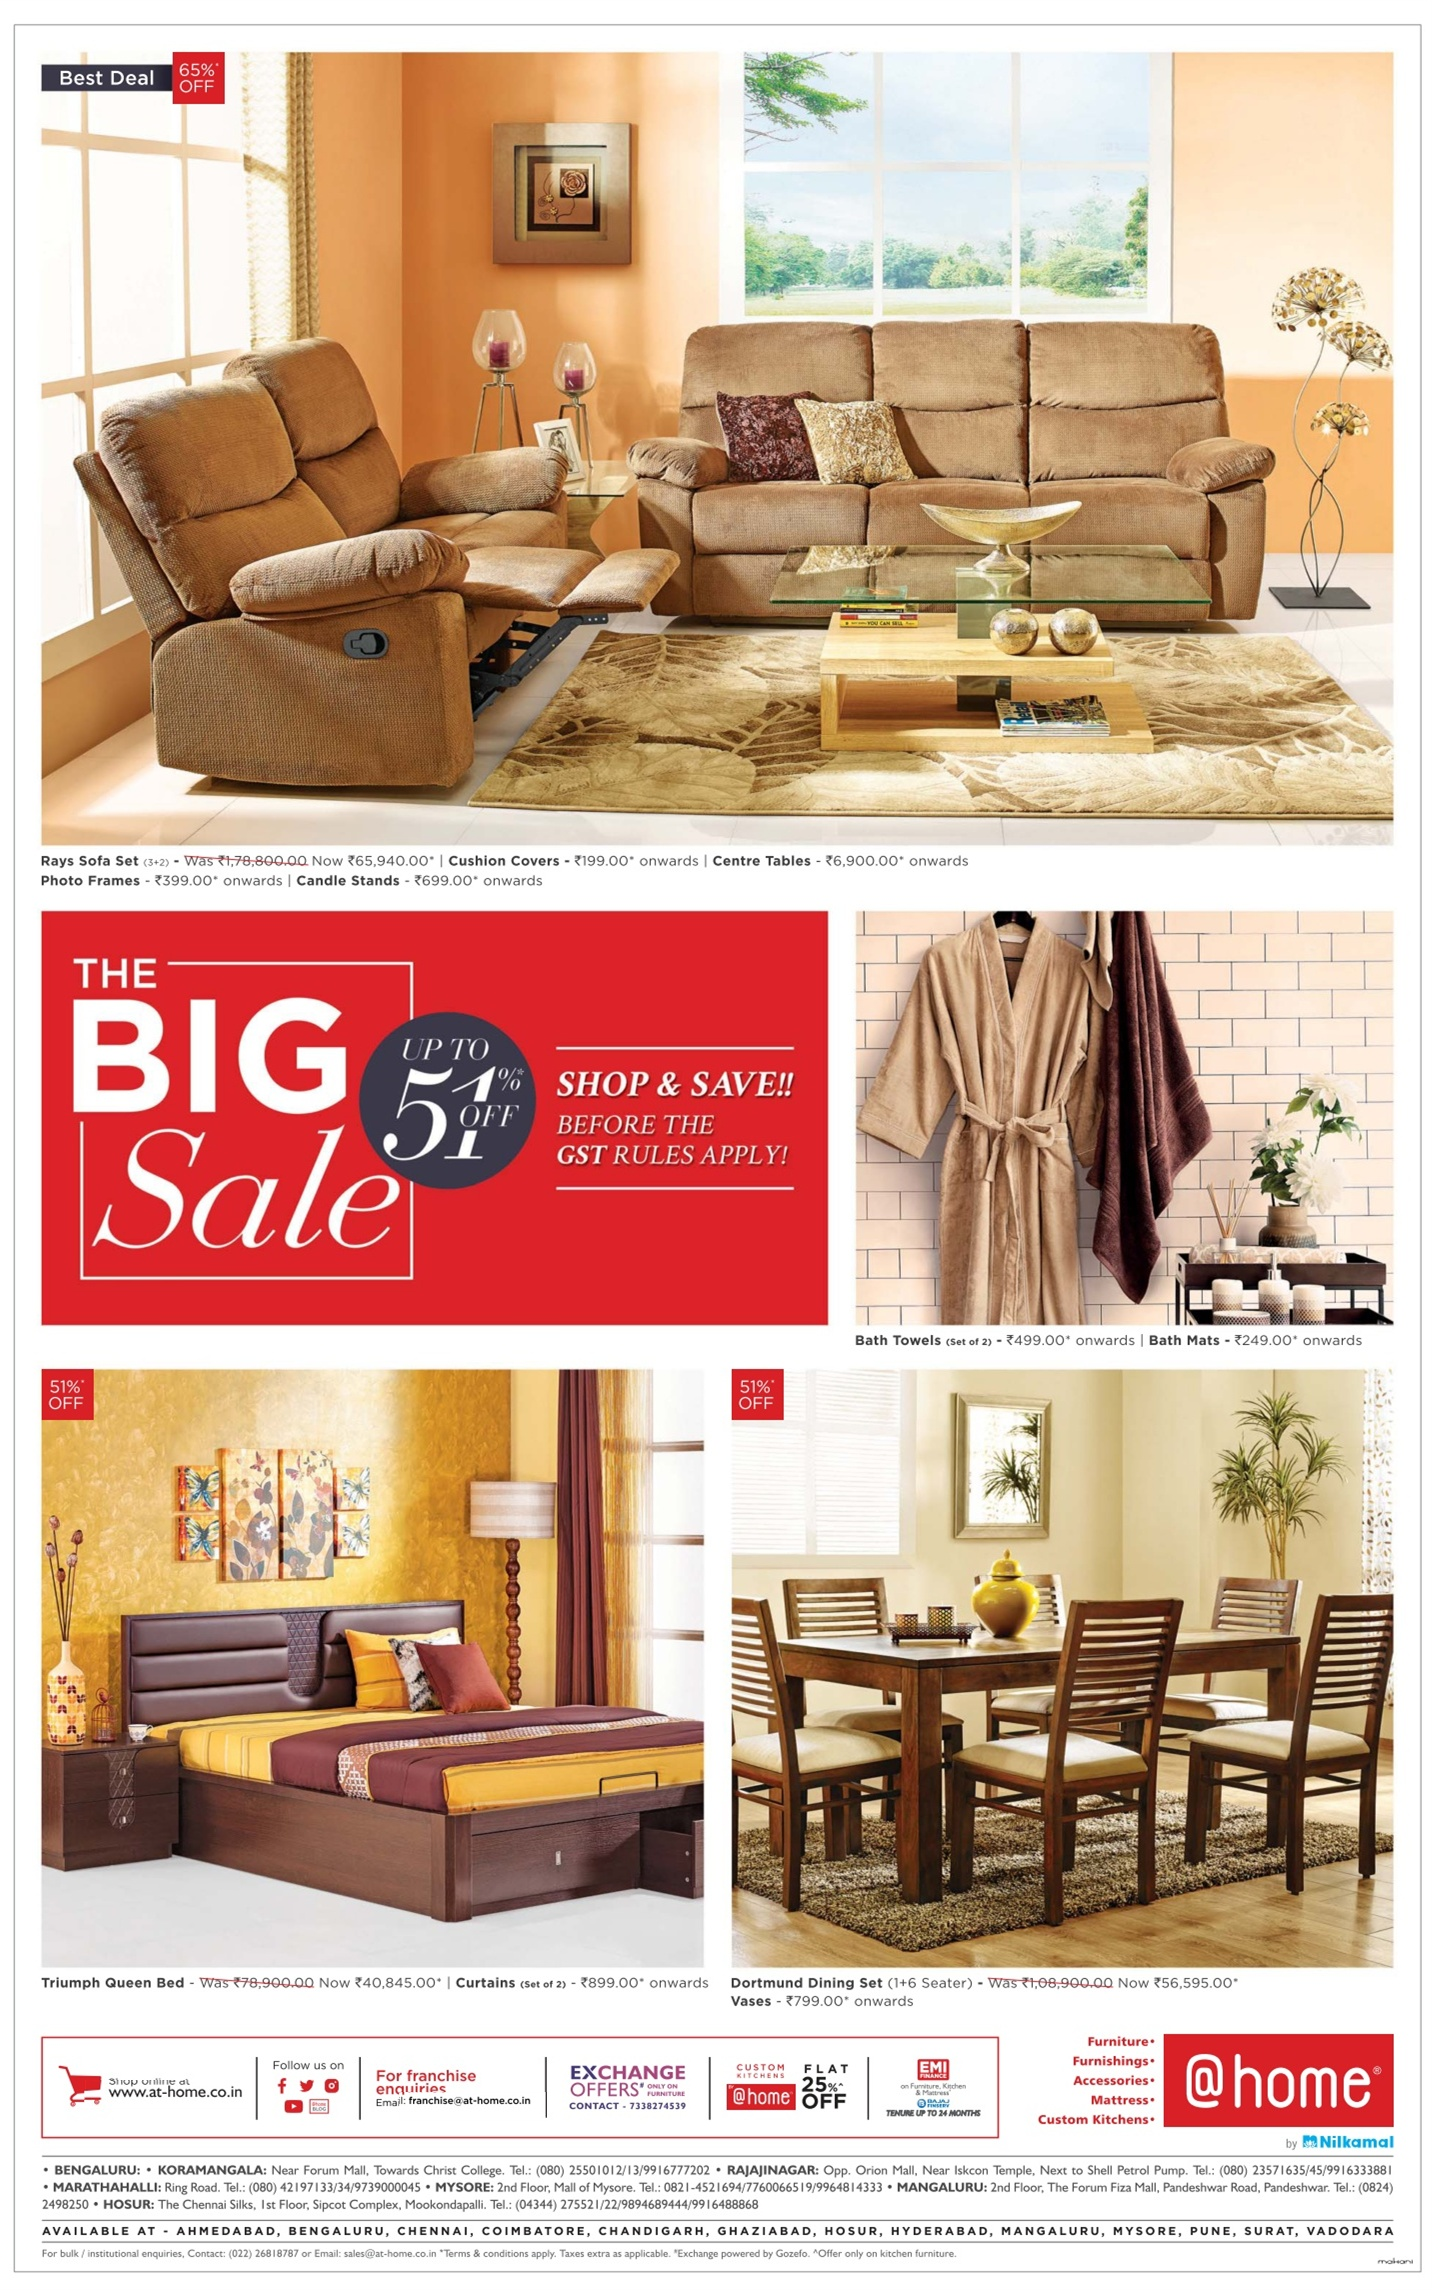 At home furniture full page ad advert gallery Best home furniture in bangalore